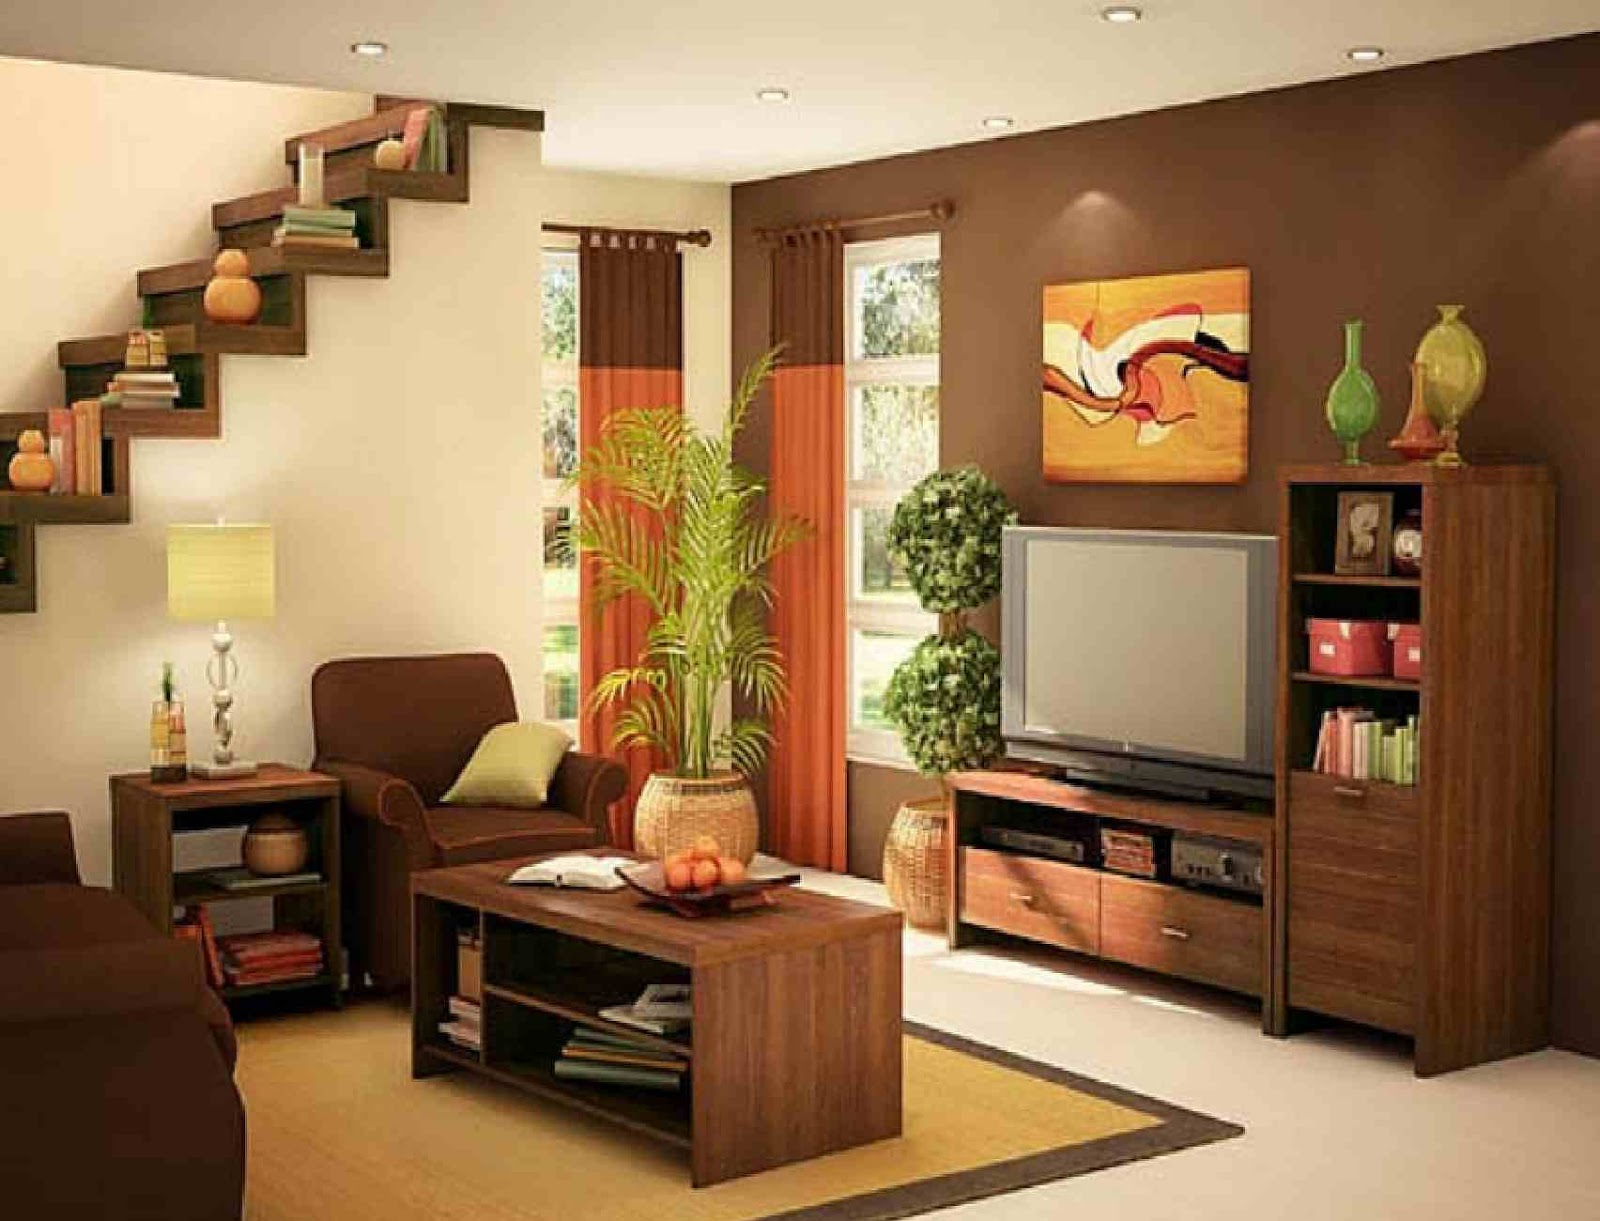 Home interior designs simple living room designs Interior design for small living room